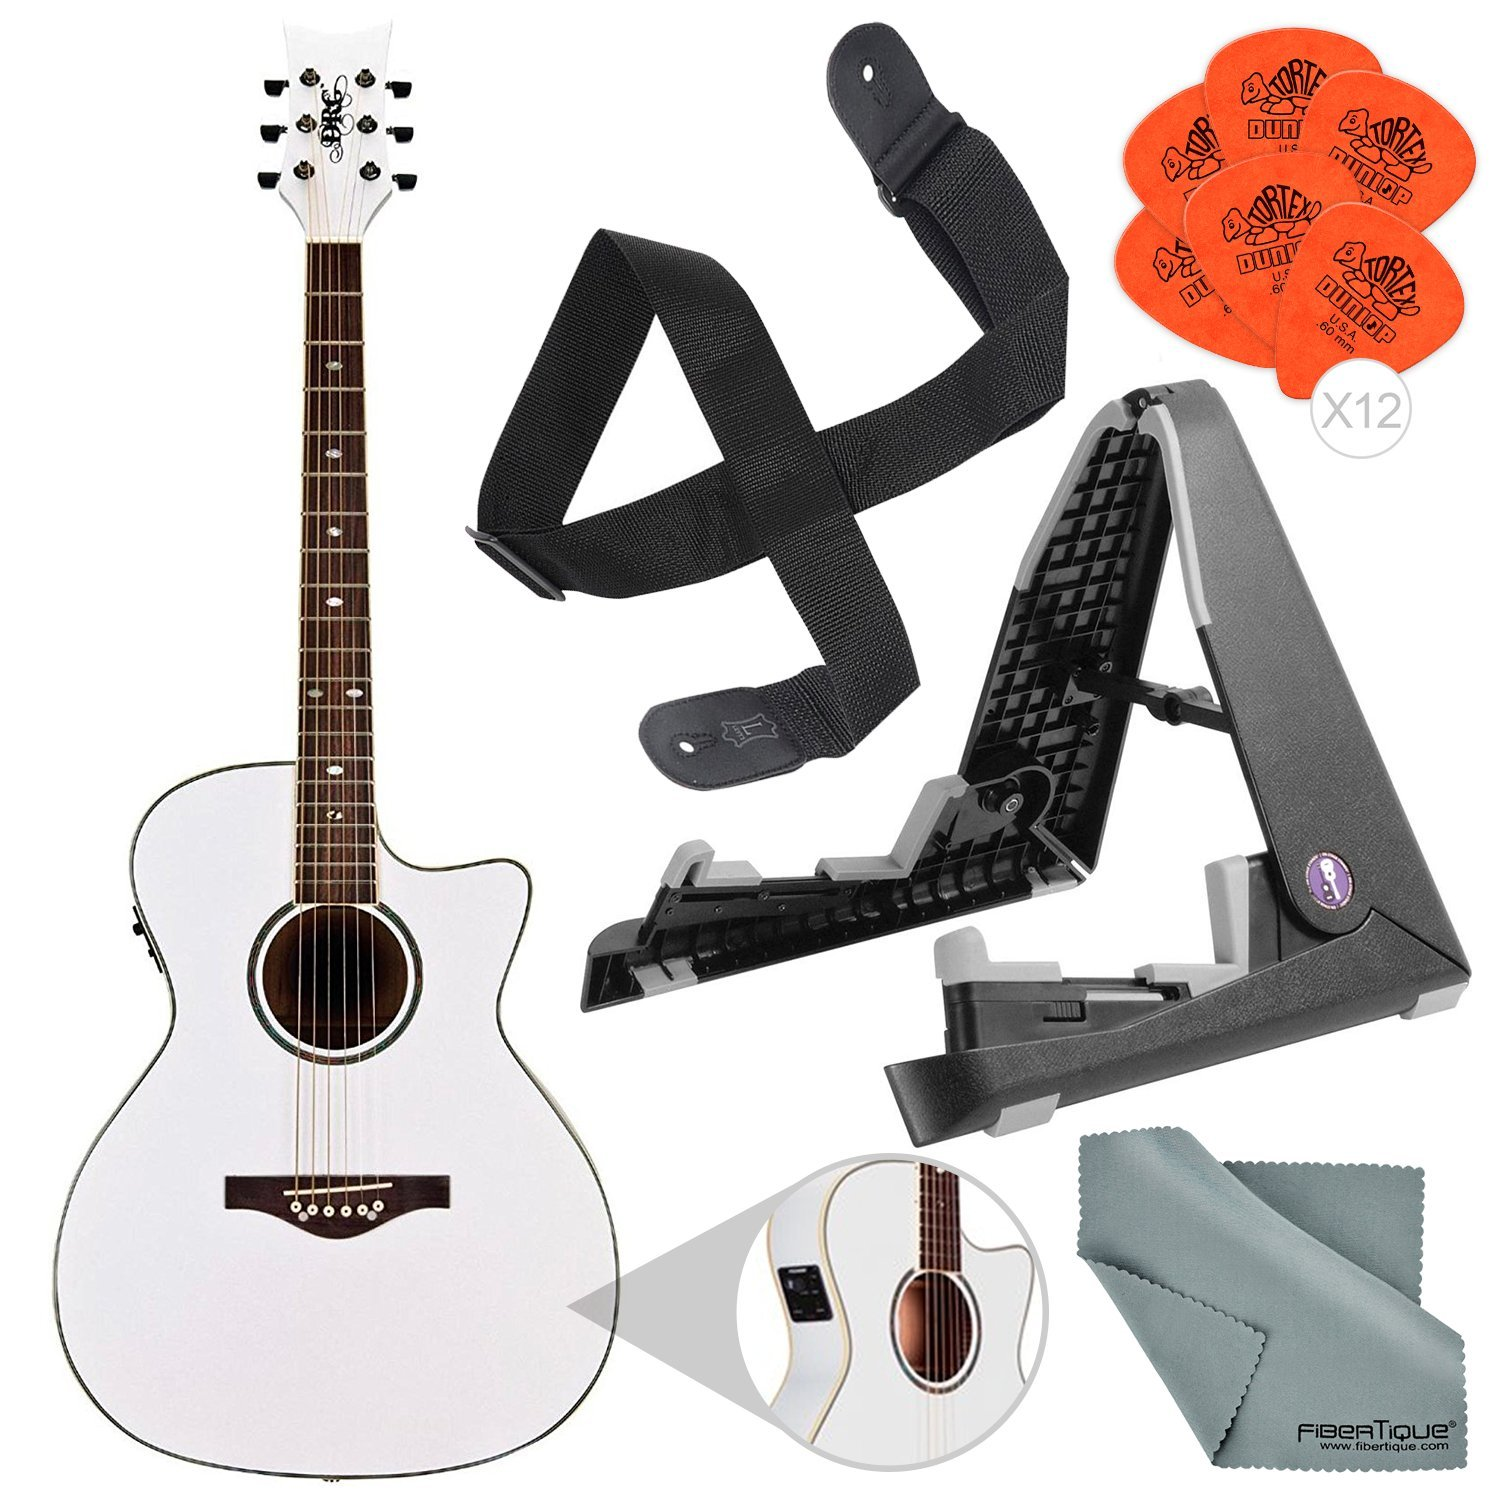 Daisy Rock Wildwood Acoustic/Electric Guitar Pearl White (DR6274-U) with Guitar Stand and Basic Bundle by Daisy Rock - Photo Savings